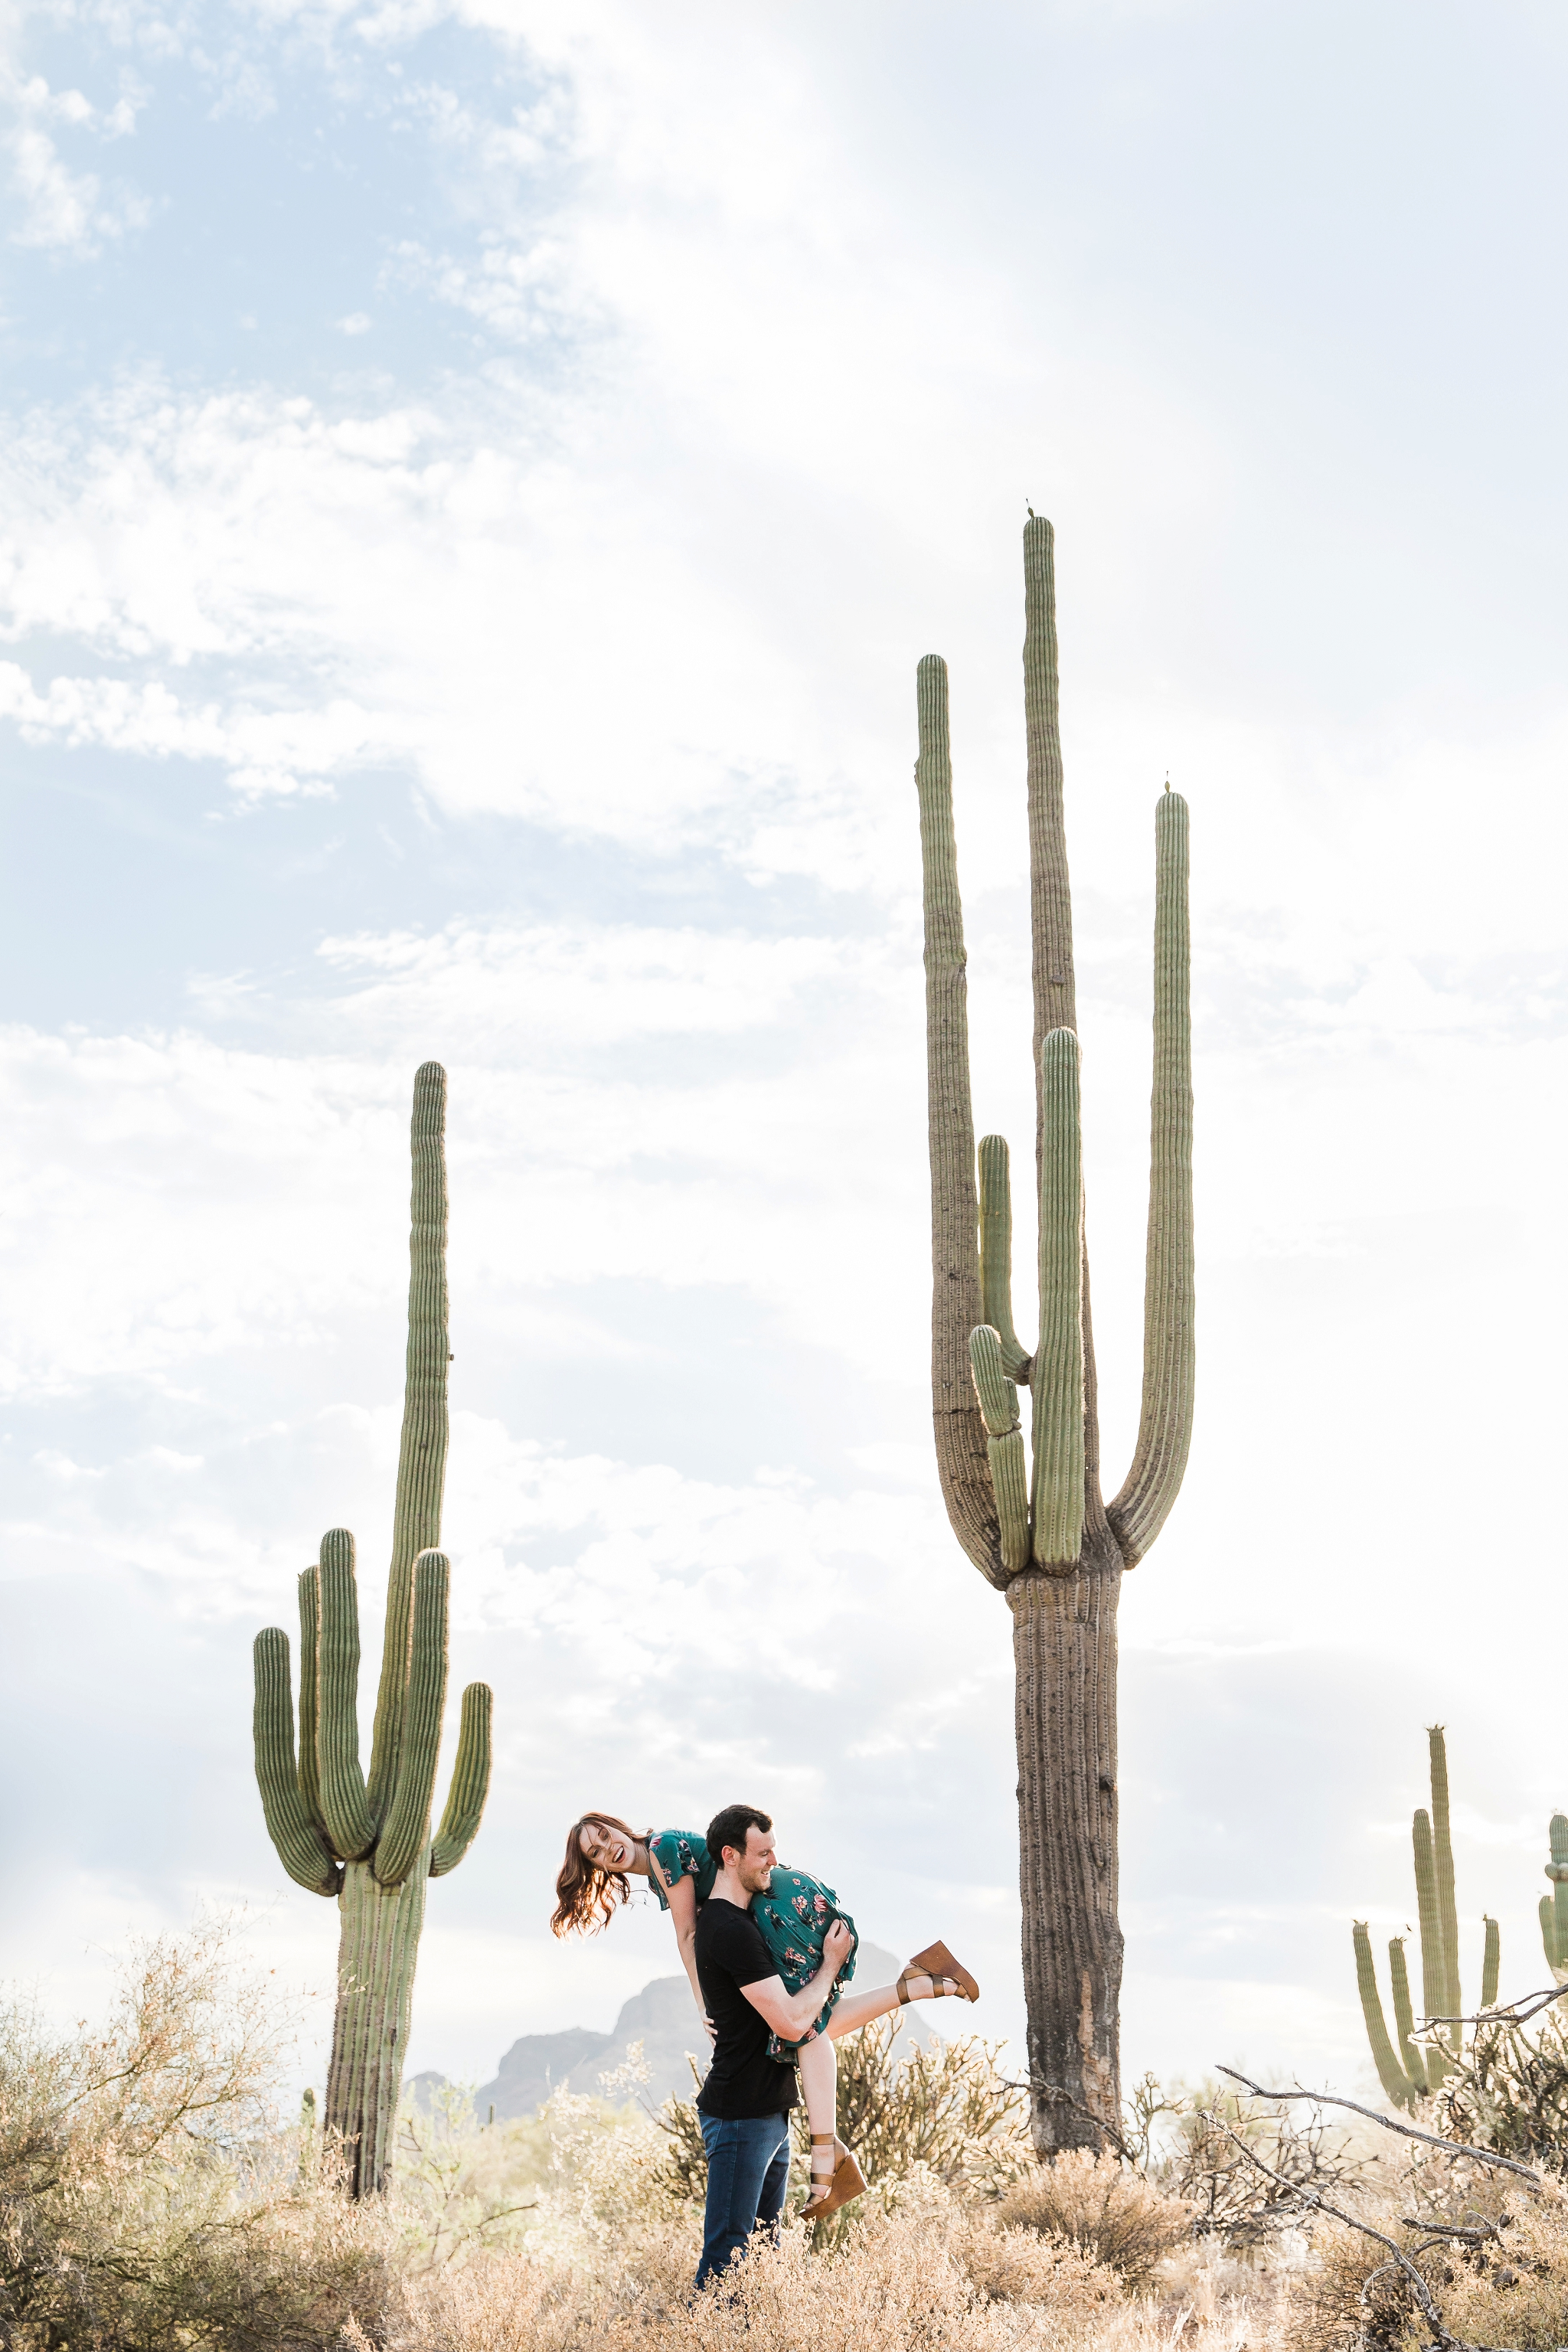 Lindsay-Borg-Photography-Arizona_2337.jpg